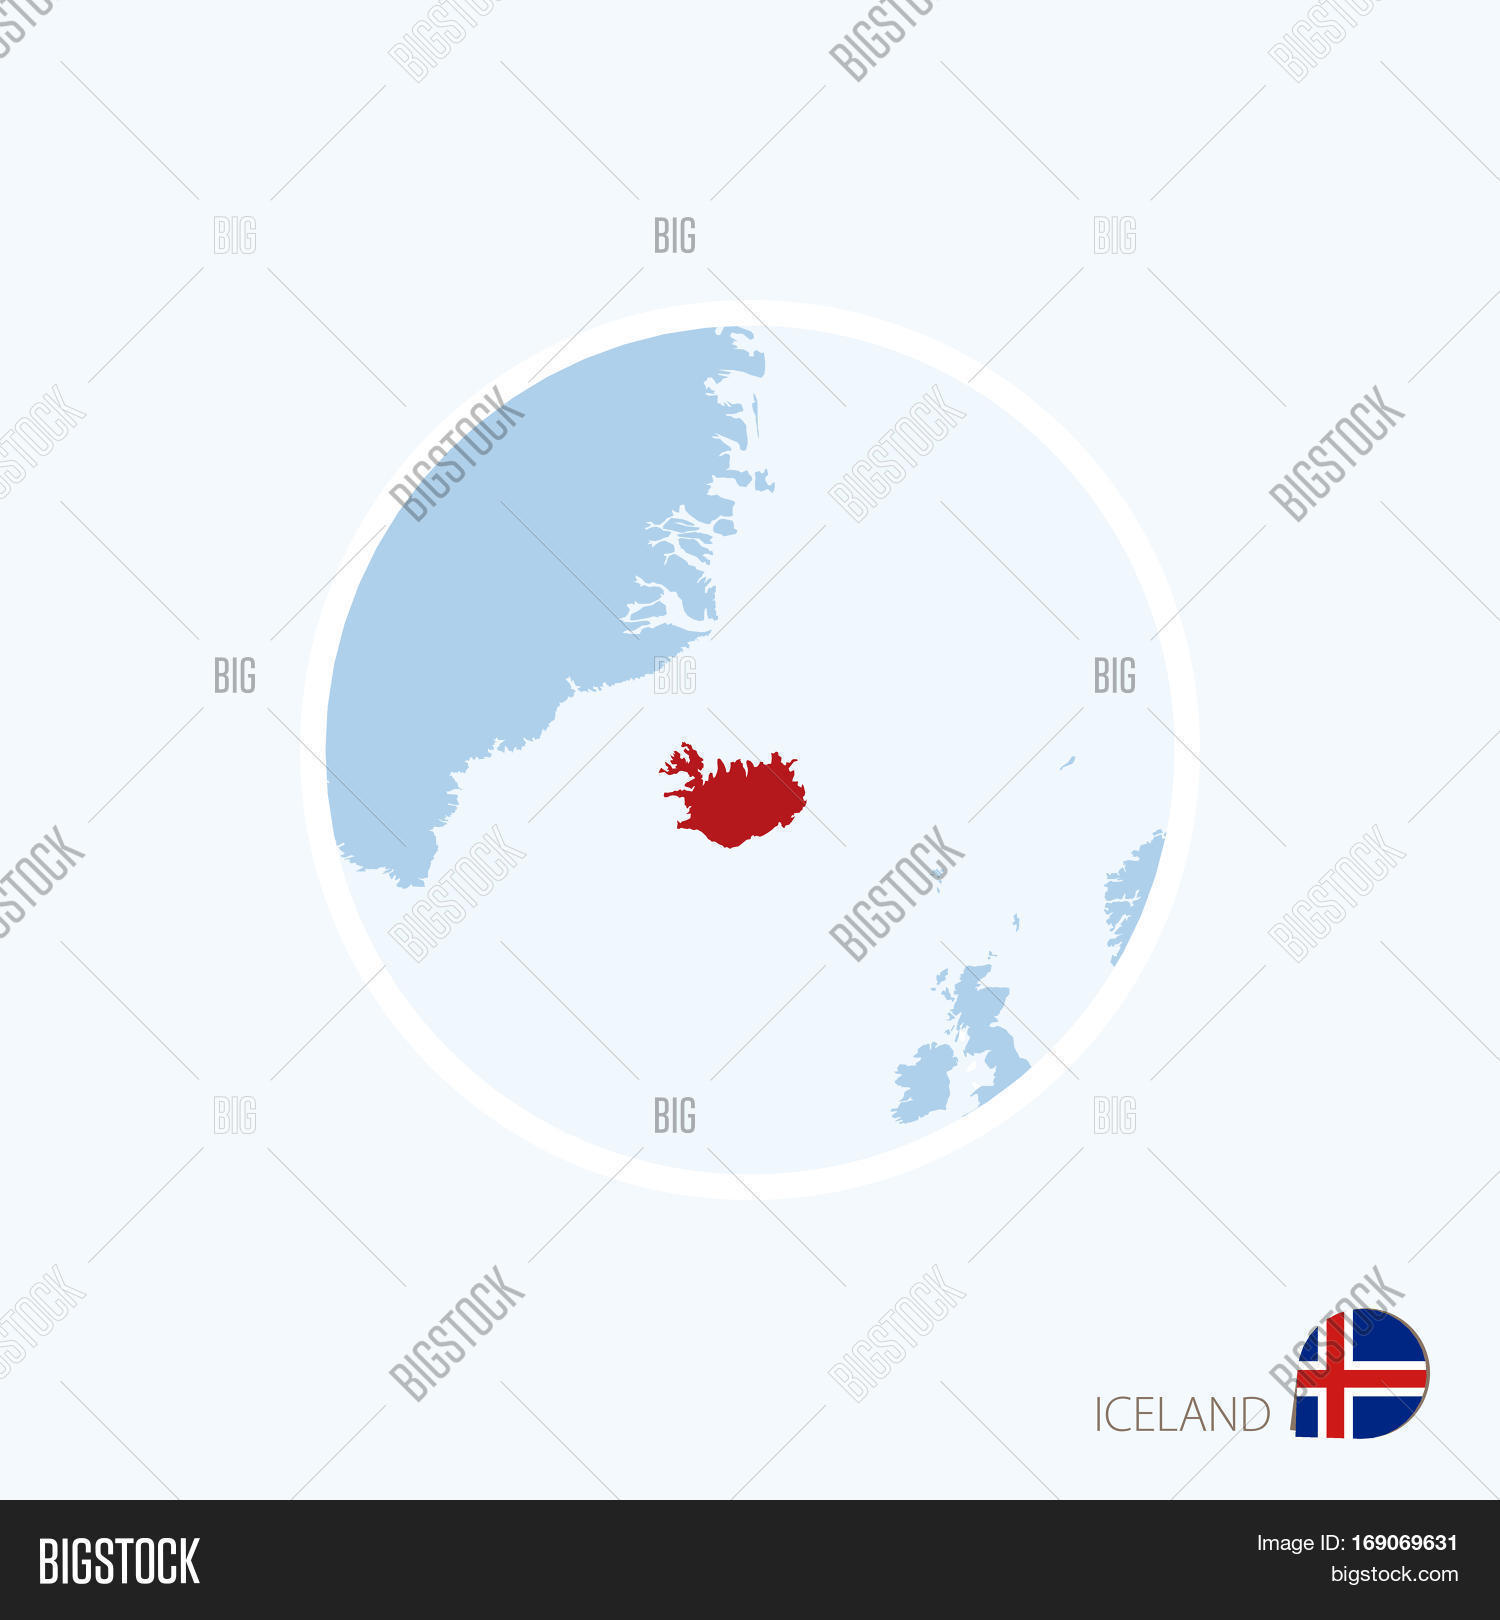 Map icon iceland vector photo free trial bigstock map icon of iceland blue map of europe with highlighted iceland in red color gumiabroncs Choice Image